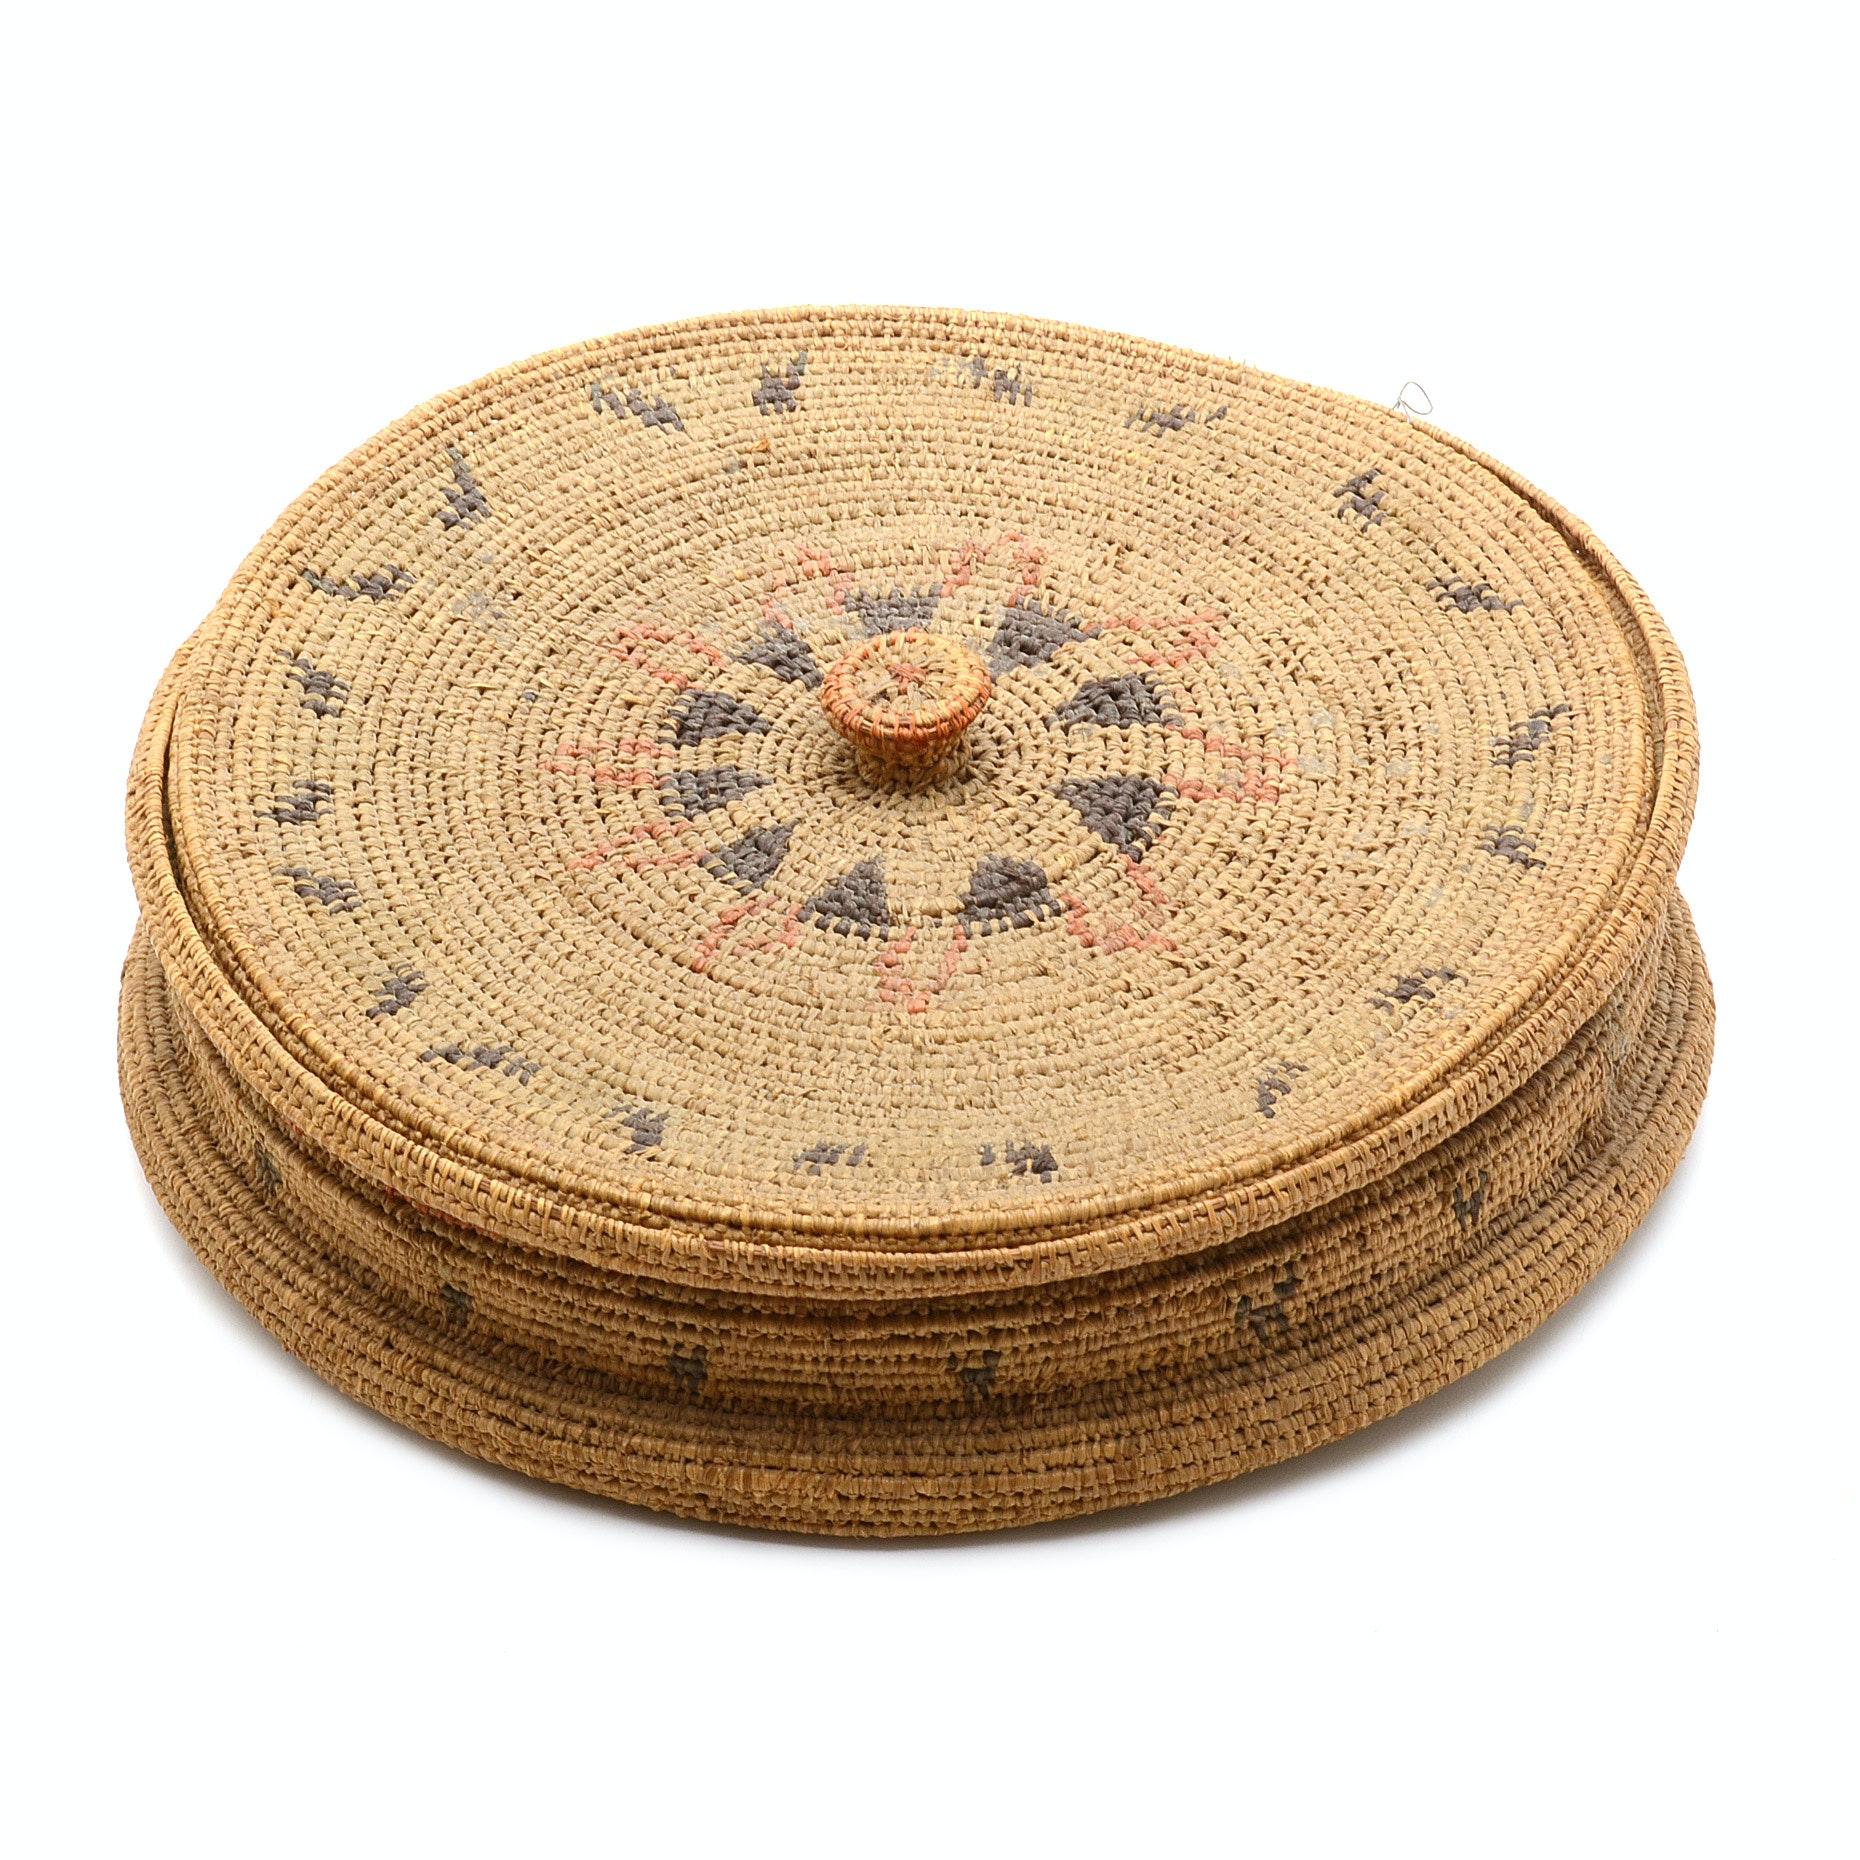 Vintage Mexican-Style Tortilla Warming Woven Basket